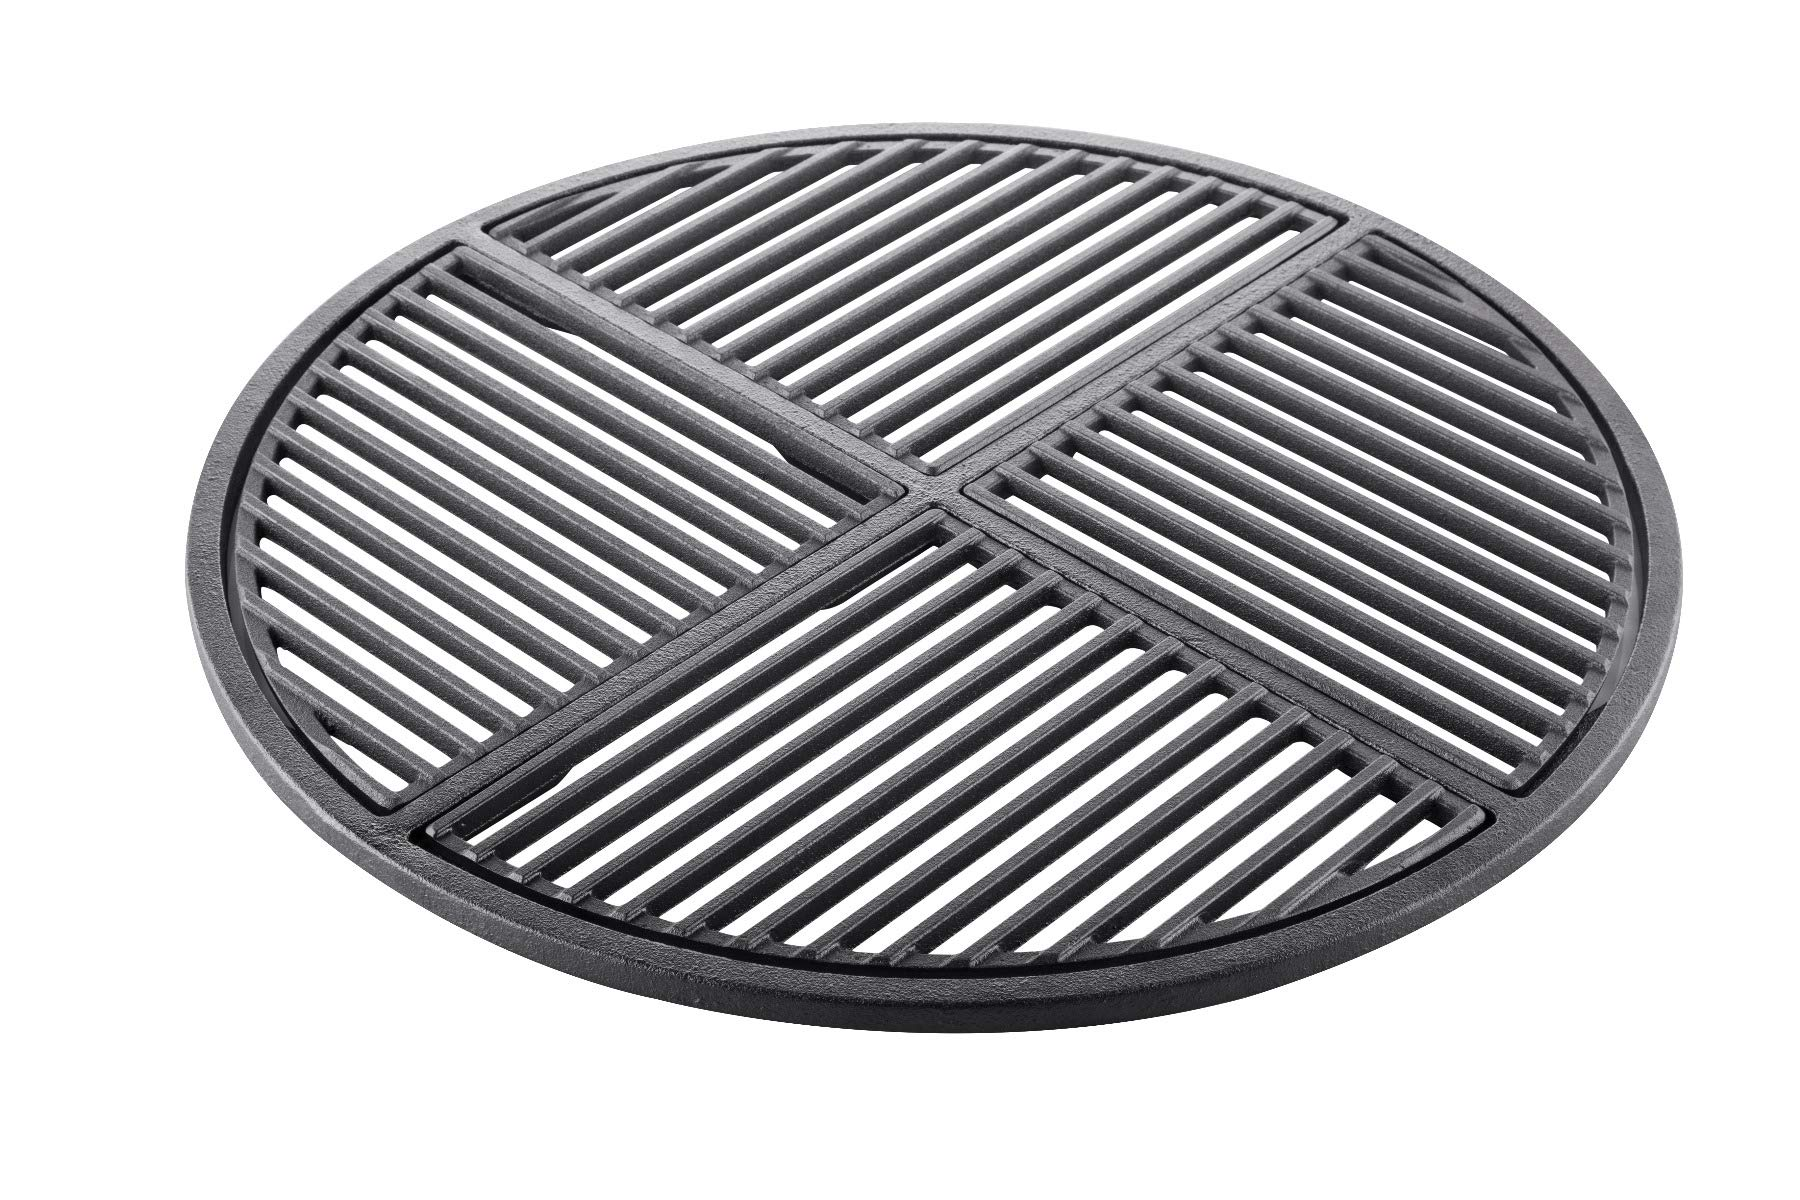 Cast Iron Grate, Pre Seasoned, Non Stick Cooking Surface, Modular  Fits 22.5'' Grills by Craycort